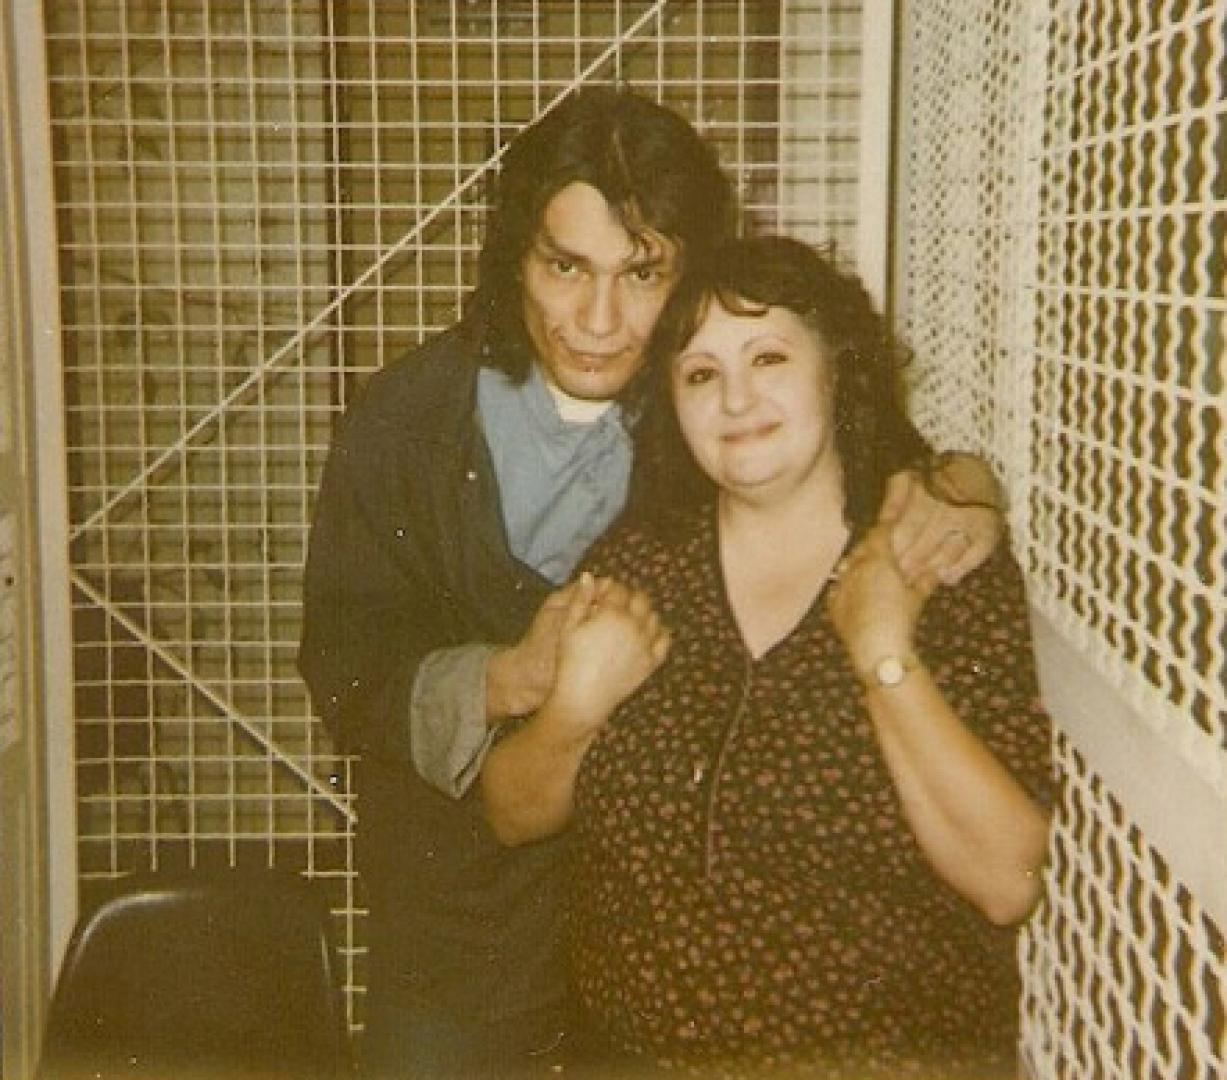 Richard Ramirez 19. kép